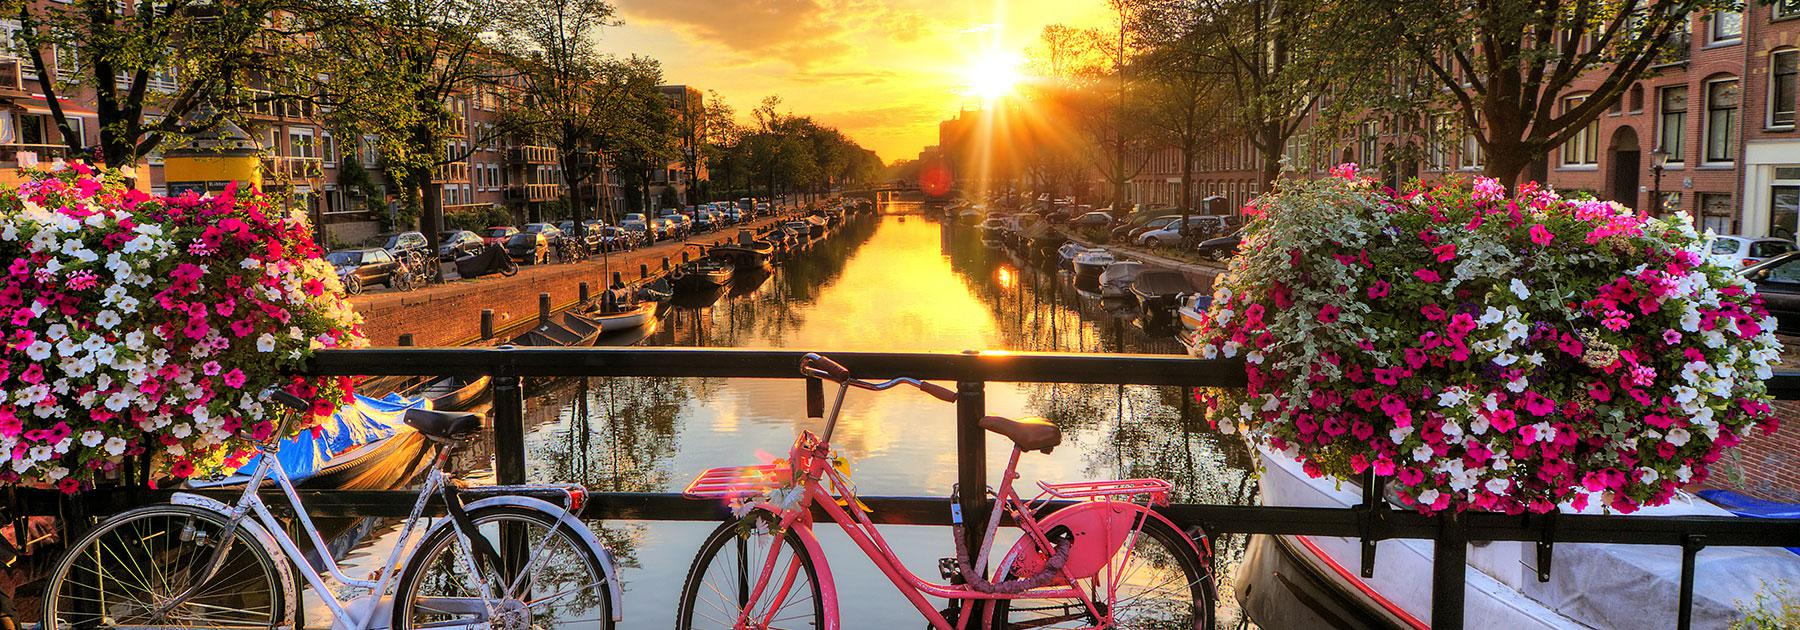 Amsterdam Vacation Packages Amsterdam Trips With Airfare